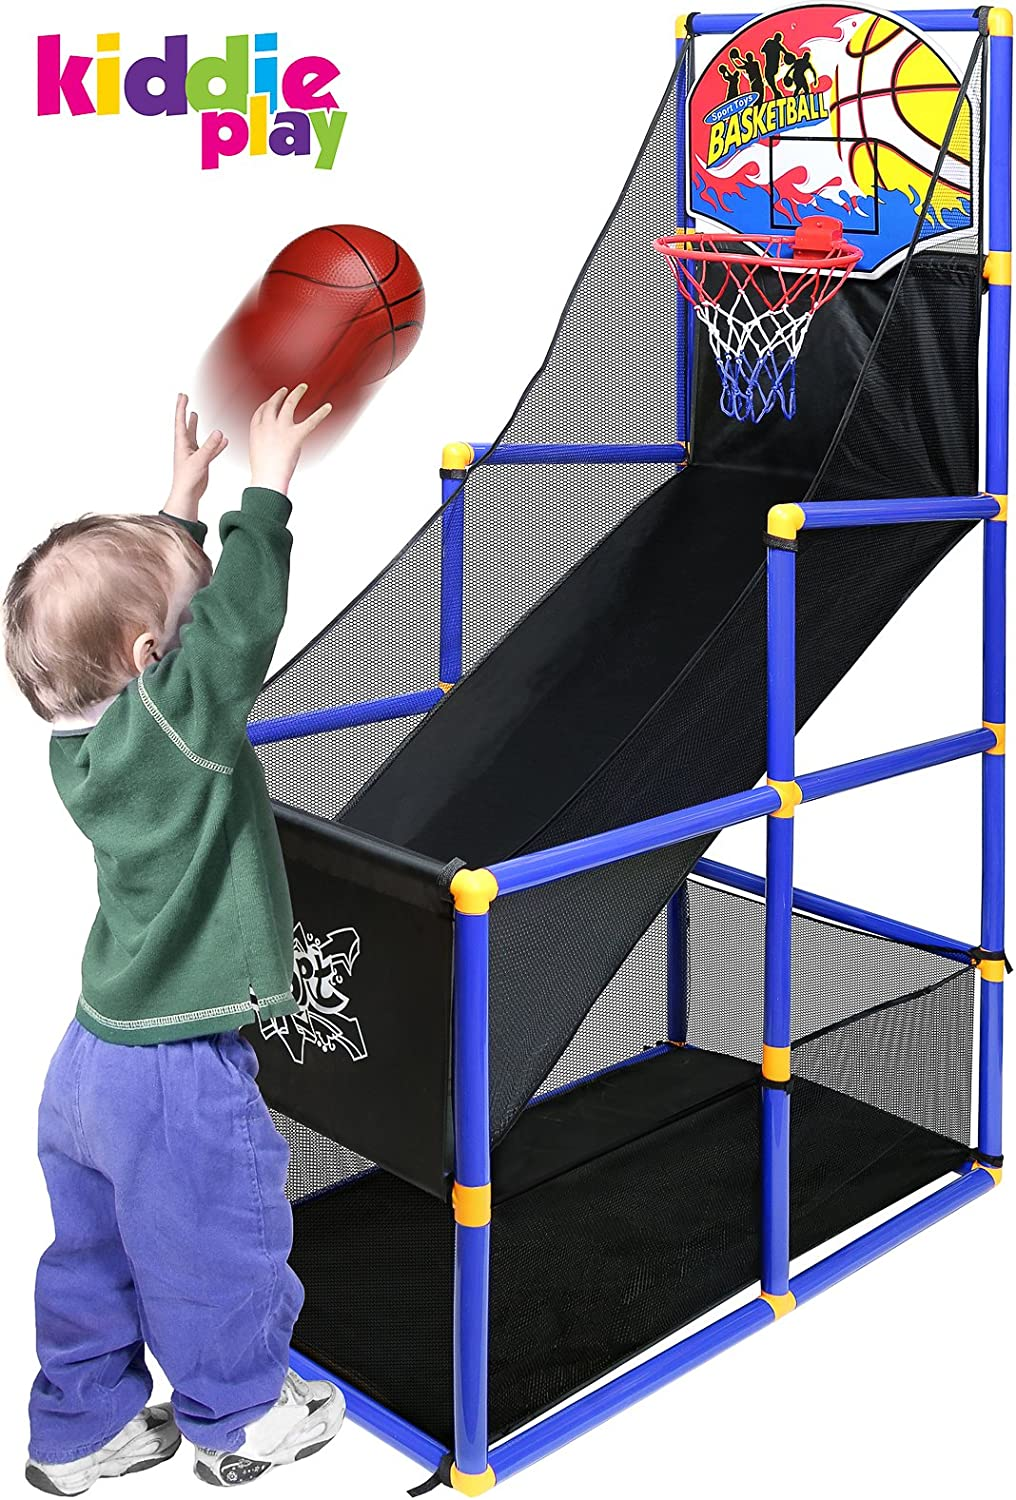 Best Portable Hoop Shooting Games for Kids Indoor /& Outdoor Mini Sports Playset Bundaloo Arcade Basketball Game Single Shot Arcade Fun Goal Training Toy for Little Toddlers to Big Boys